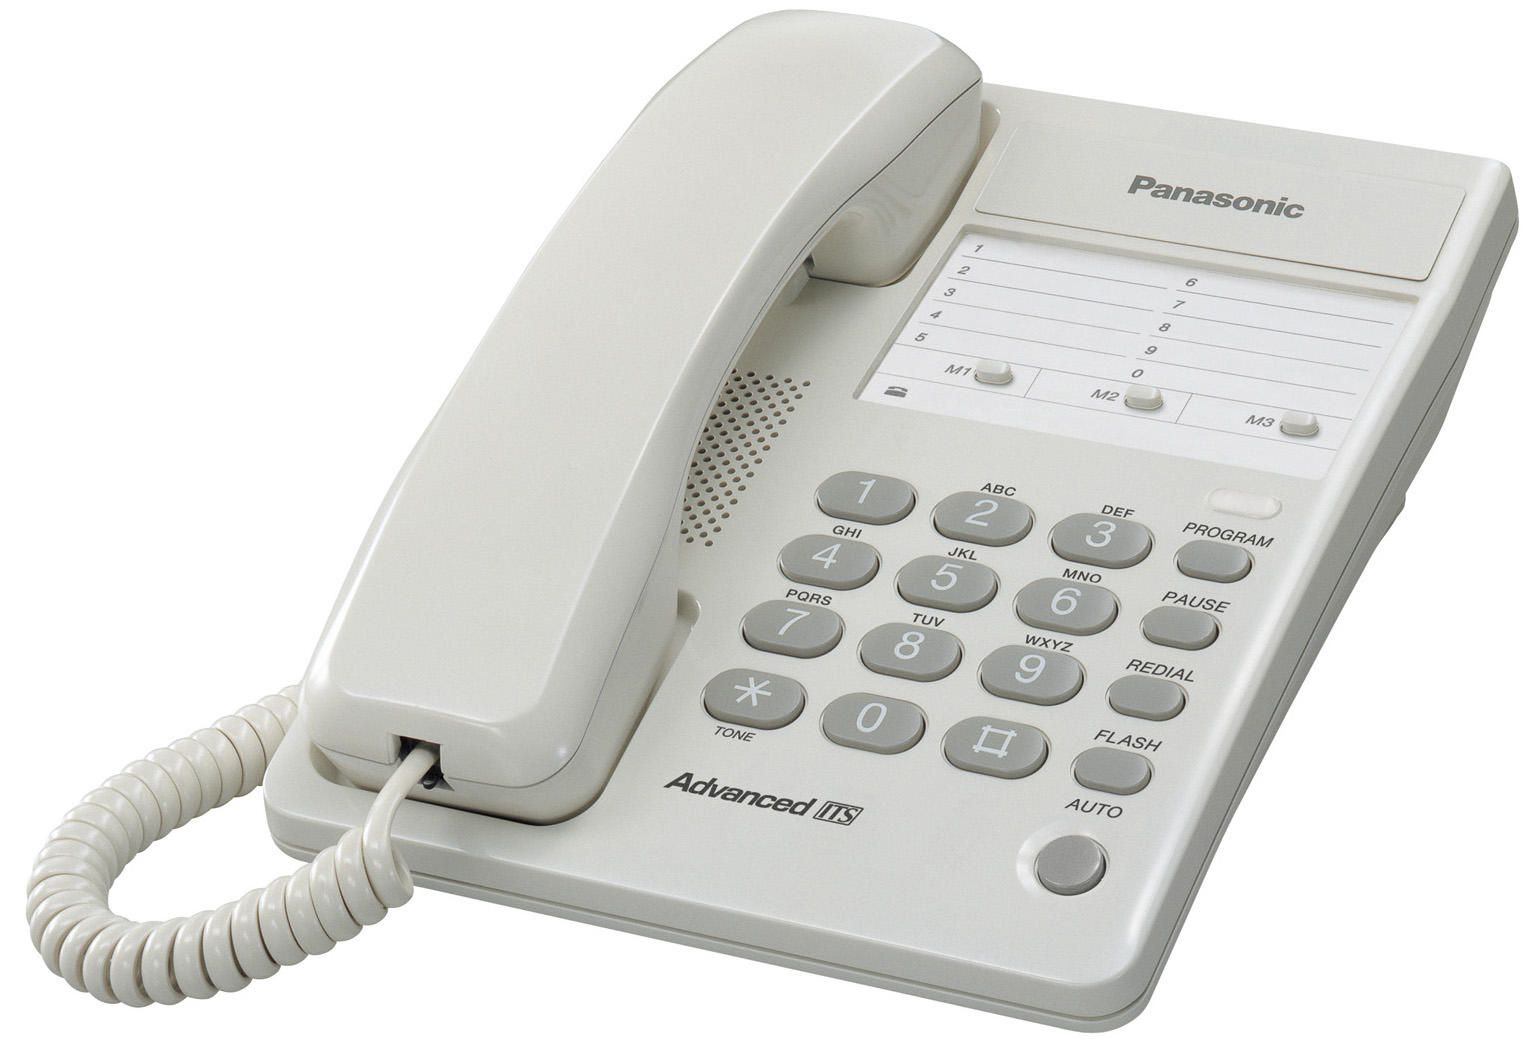 KX-T2371 Integrated Telephone System - White